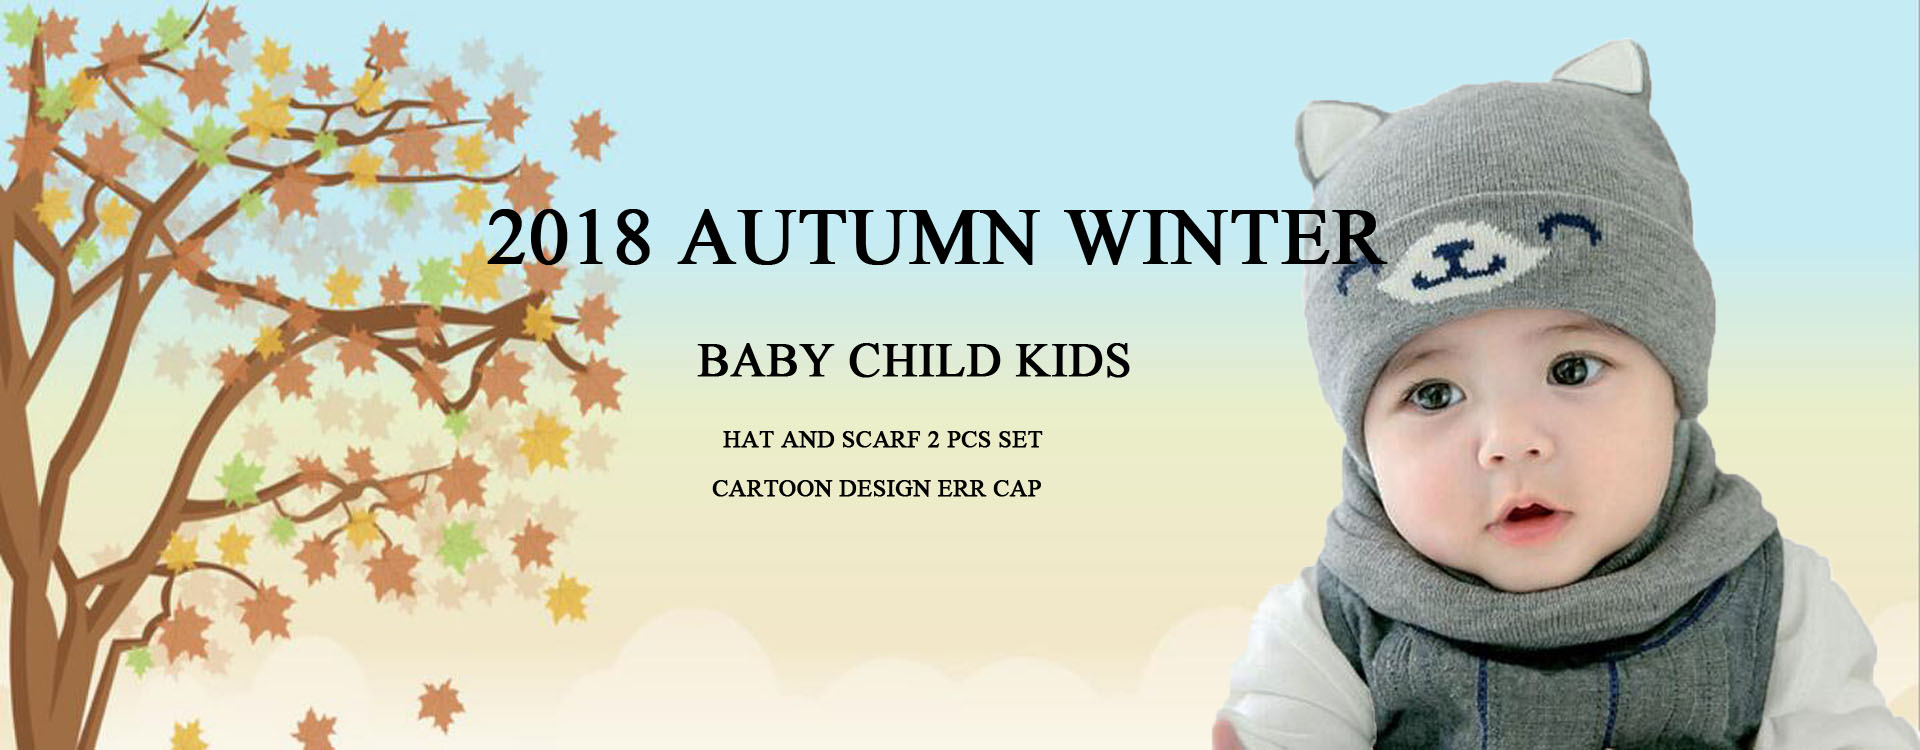 68d81c85f4f Retail Unisex New Solid Color Bomber Hats Children Winter Warm Earmuffs Beanies  Kids Earflap Ear Protection ...